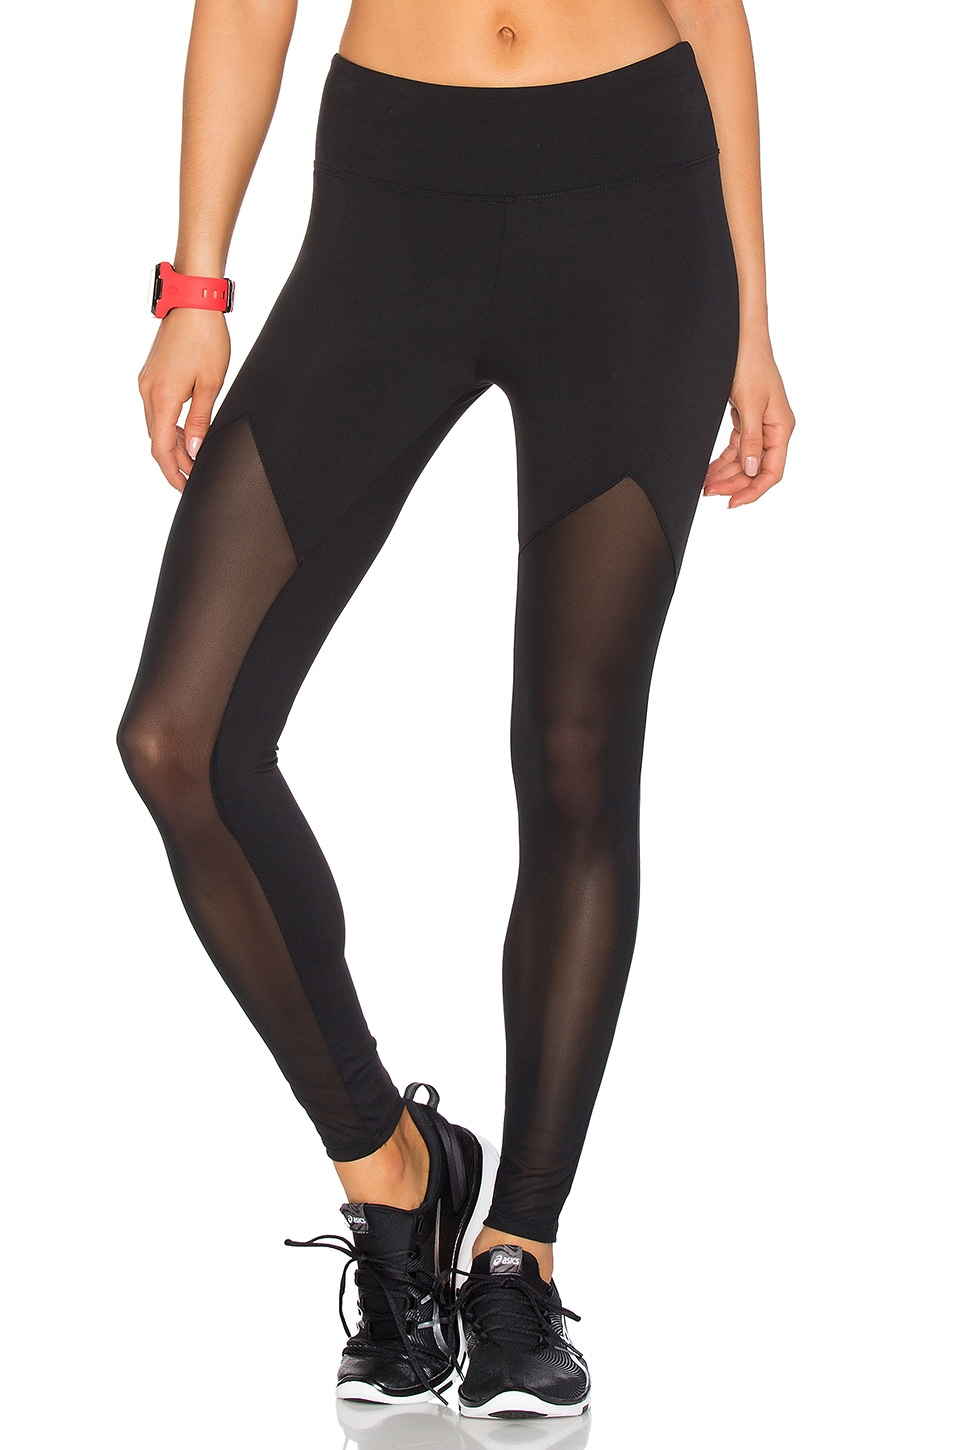 WORK by Lovers + Friends Sprinter Mesh Legging by Lovers + Friends